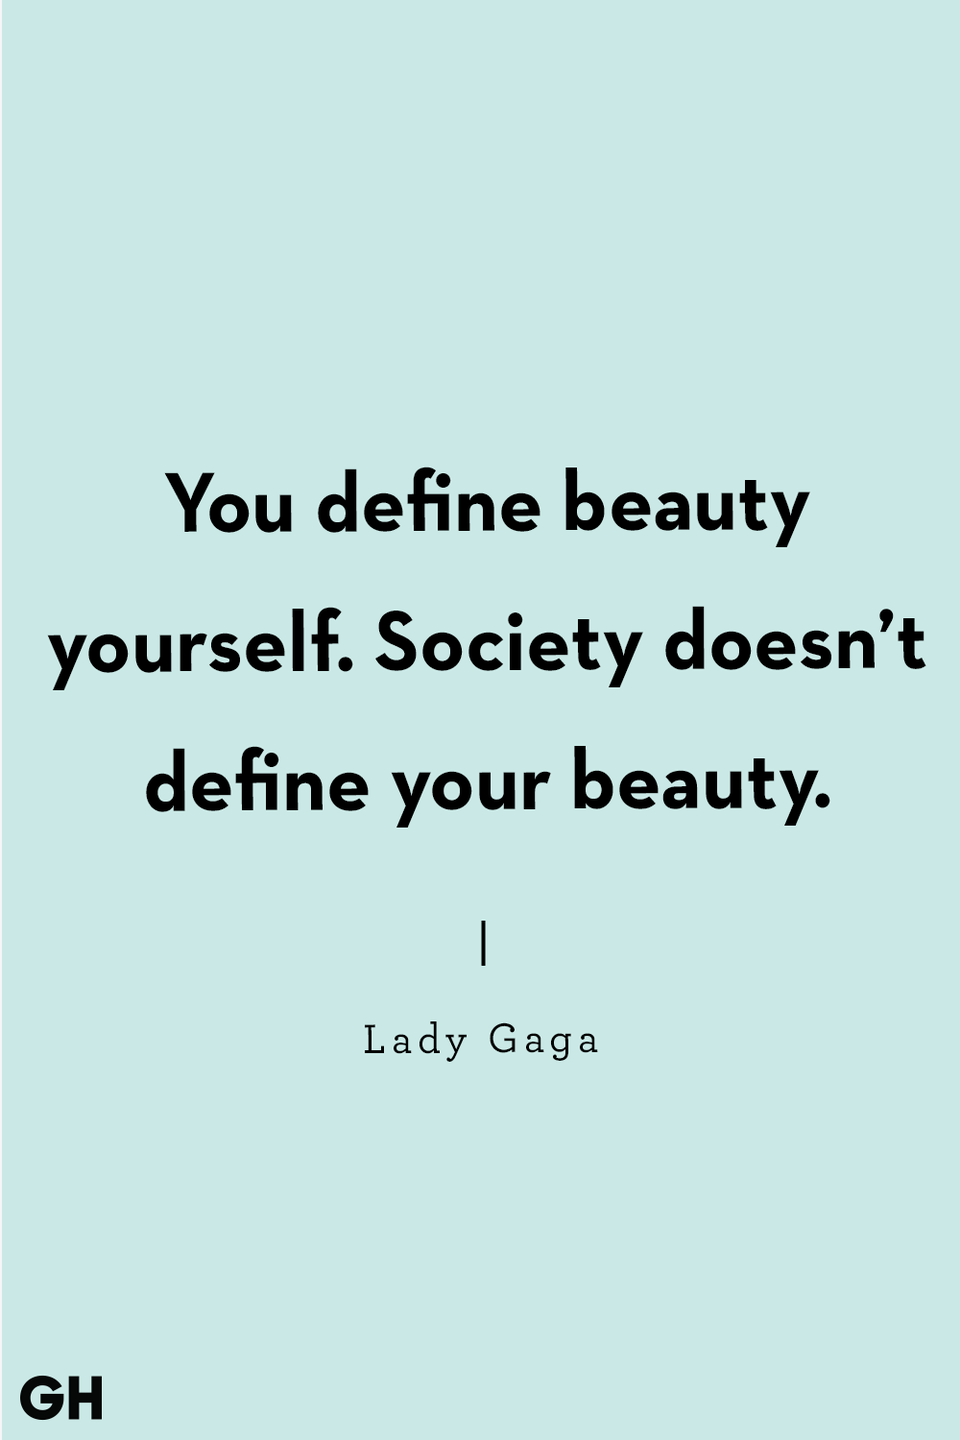 "<p>""You define beauty yourself. Society doesn't define your beauty.""</p>"